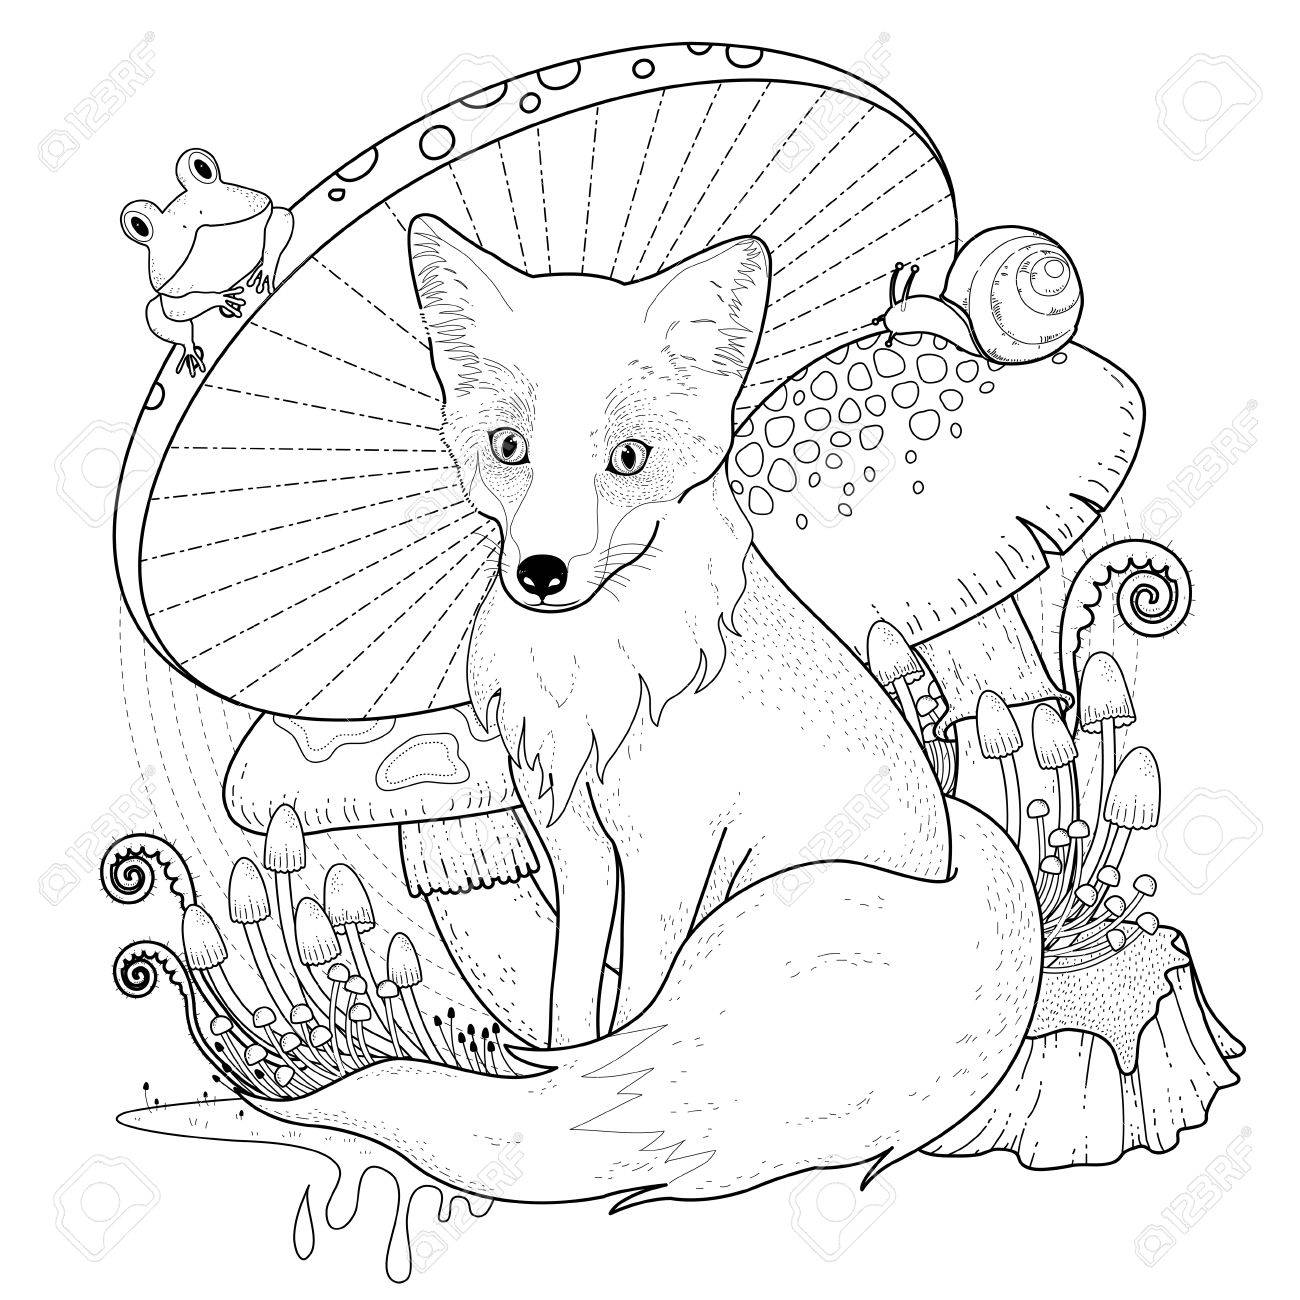 1300x1300 Adorable Fox Coloring Page With Mushrooms In Exquisite Line